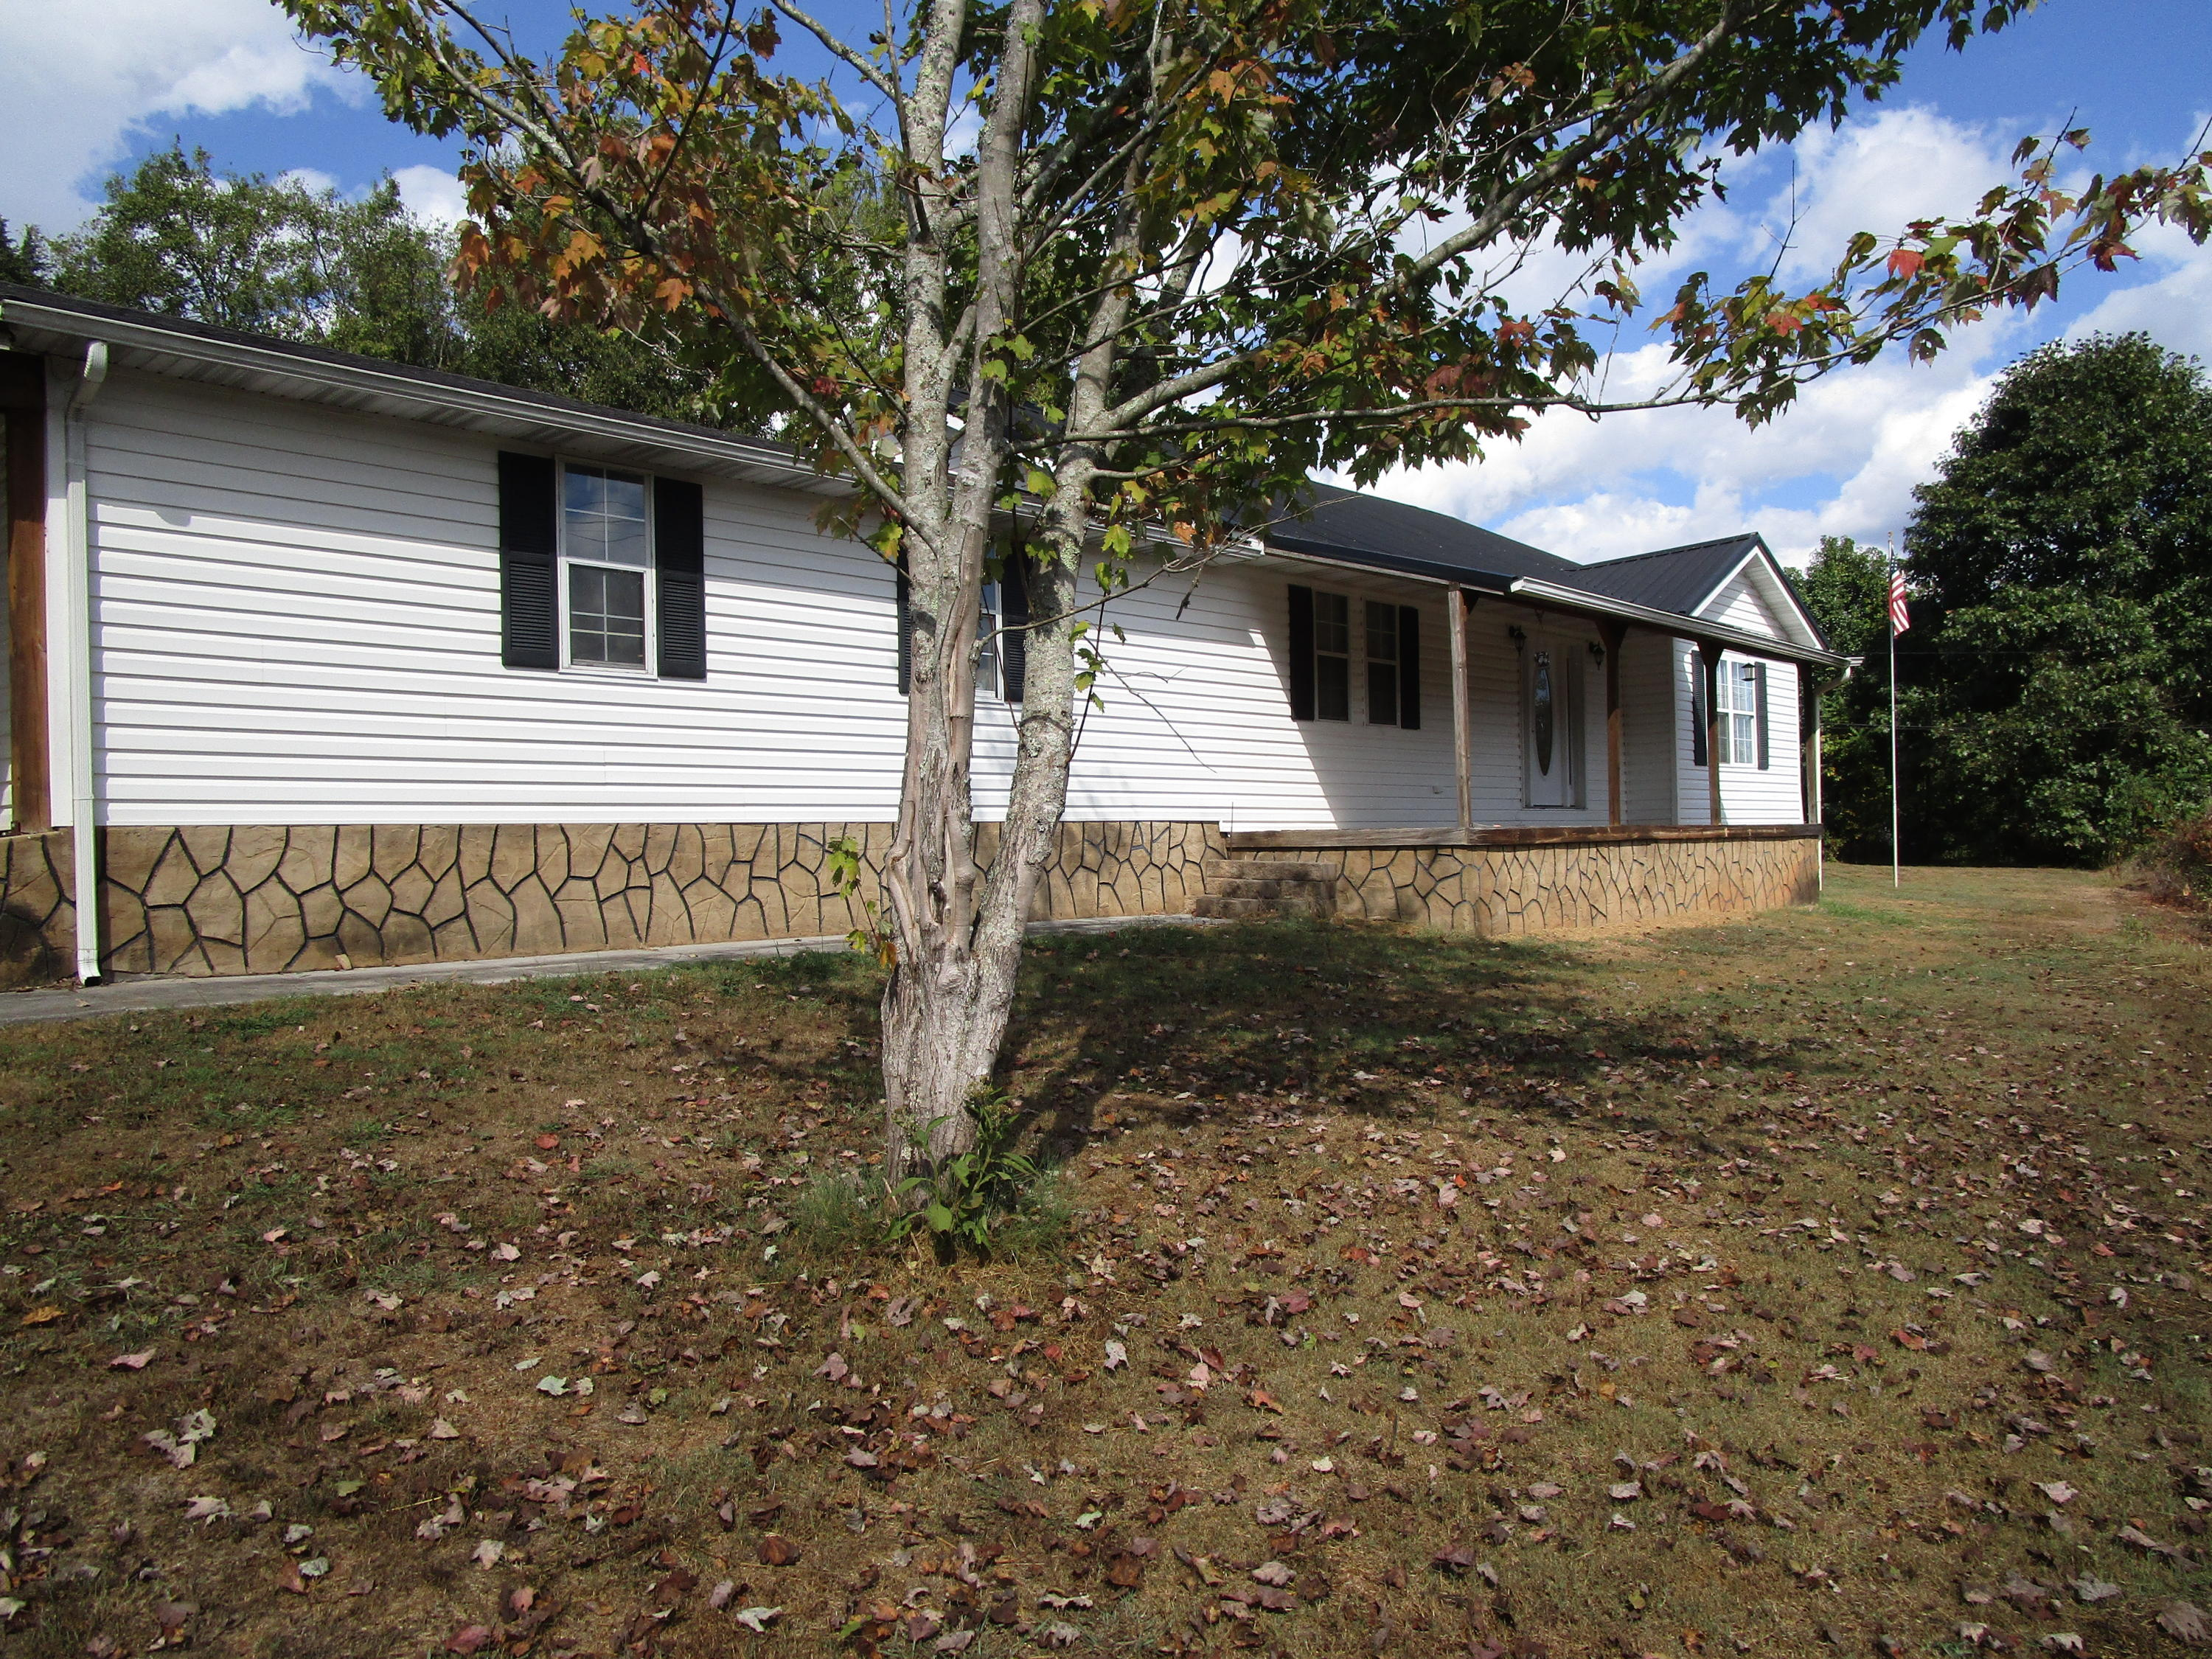 2310 Boyds Creek Hwy, Sevierville, Tennessee 37876, 3 Bedrooms Bedrooms, ,2 BathroomsBathrooms,Single Family,For Sale,Boyds Creek,1097526